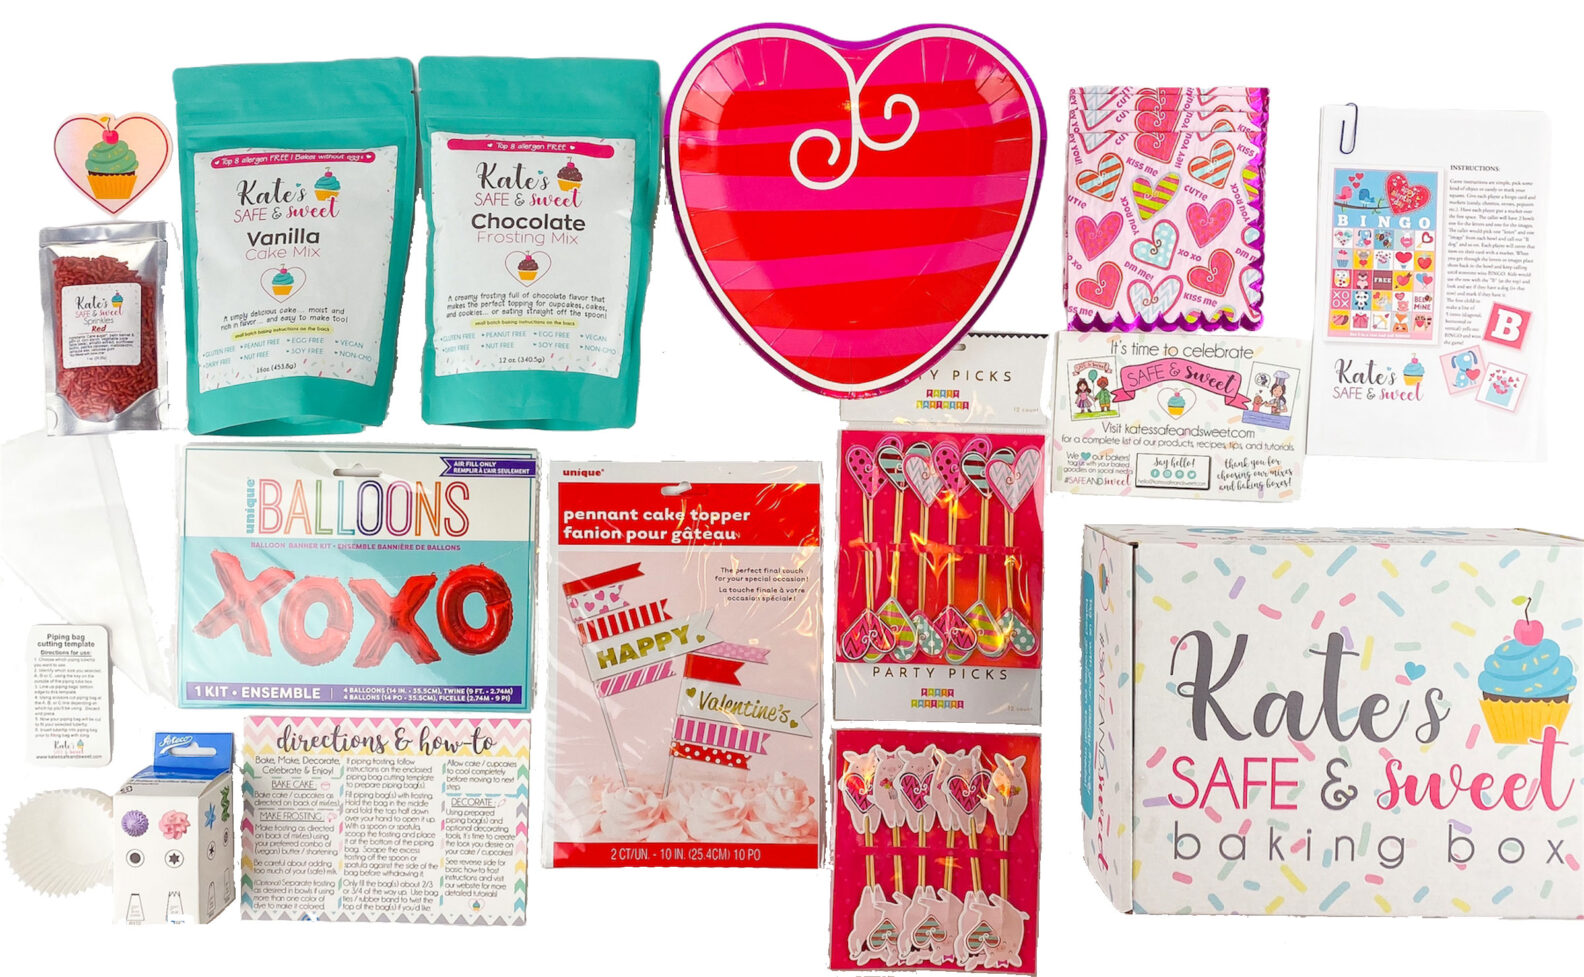 Kate's-Safe-and-Sweet---Valentine's-Party-Baking-Box-Flatlay